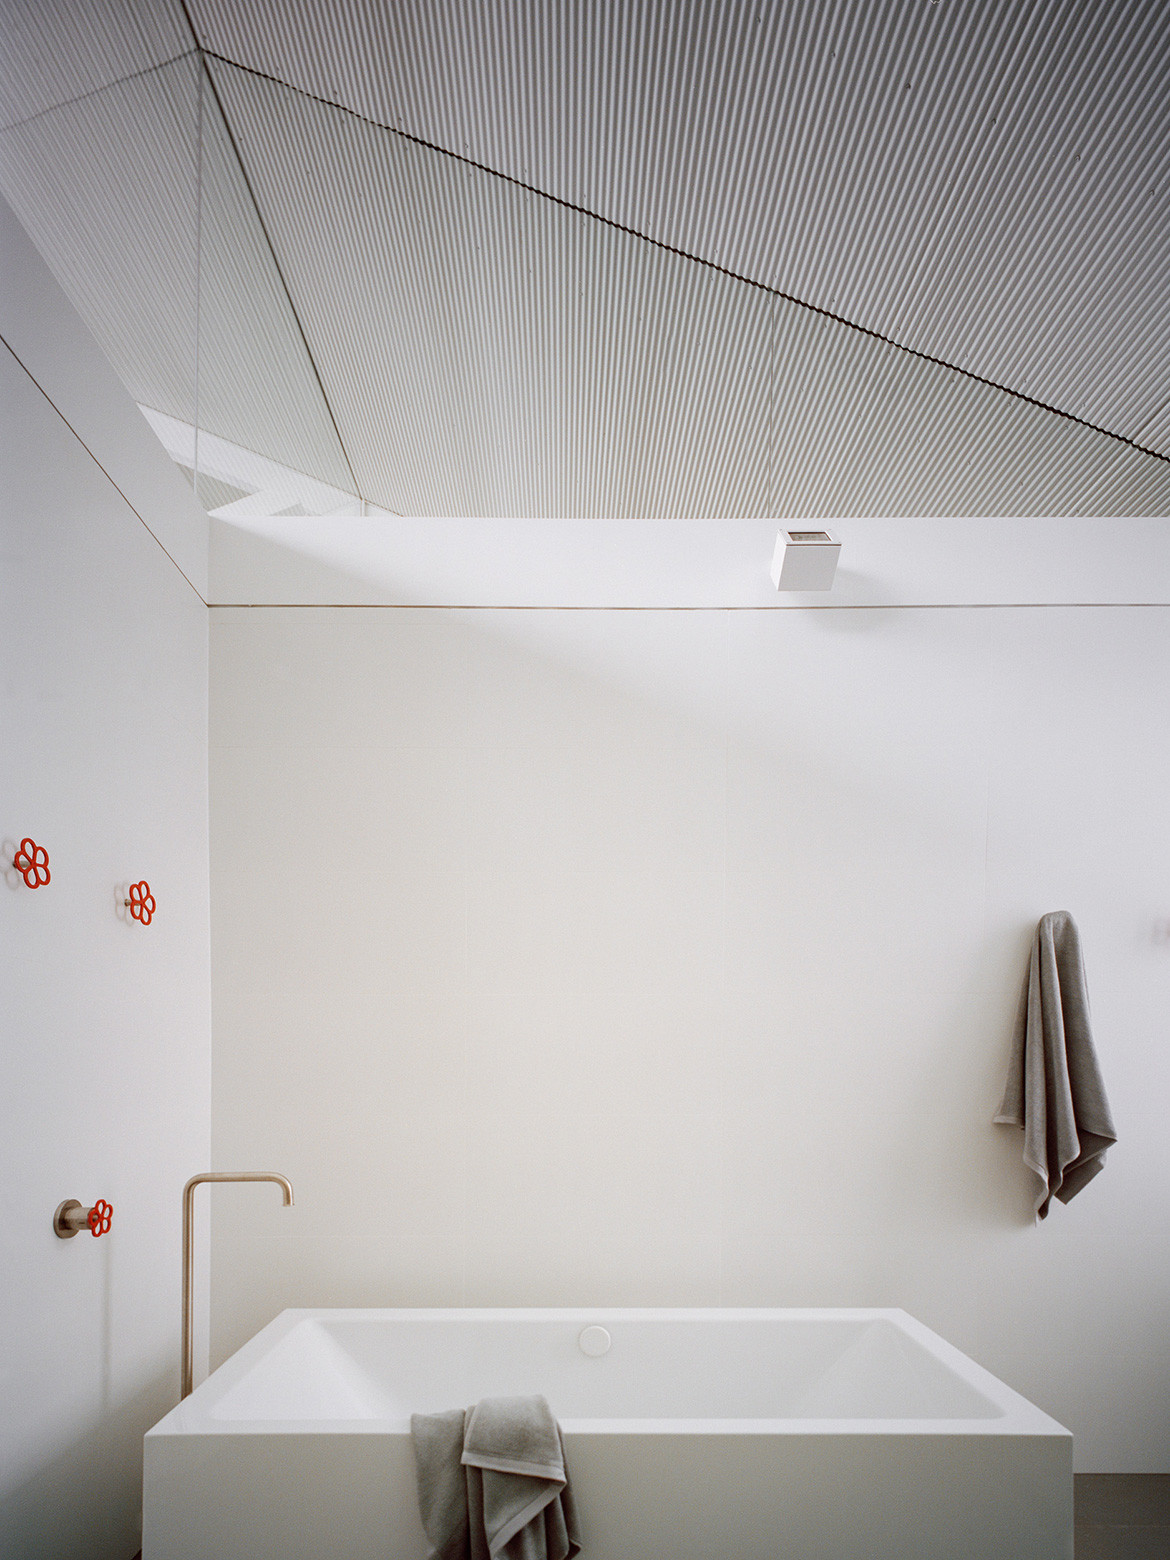 Modern industrial minimalist interior design aesthetic in bathroom of Redfern Warehouse by Ian Moore Architects